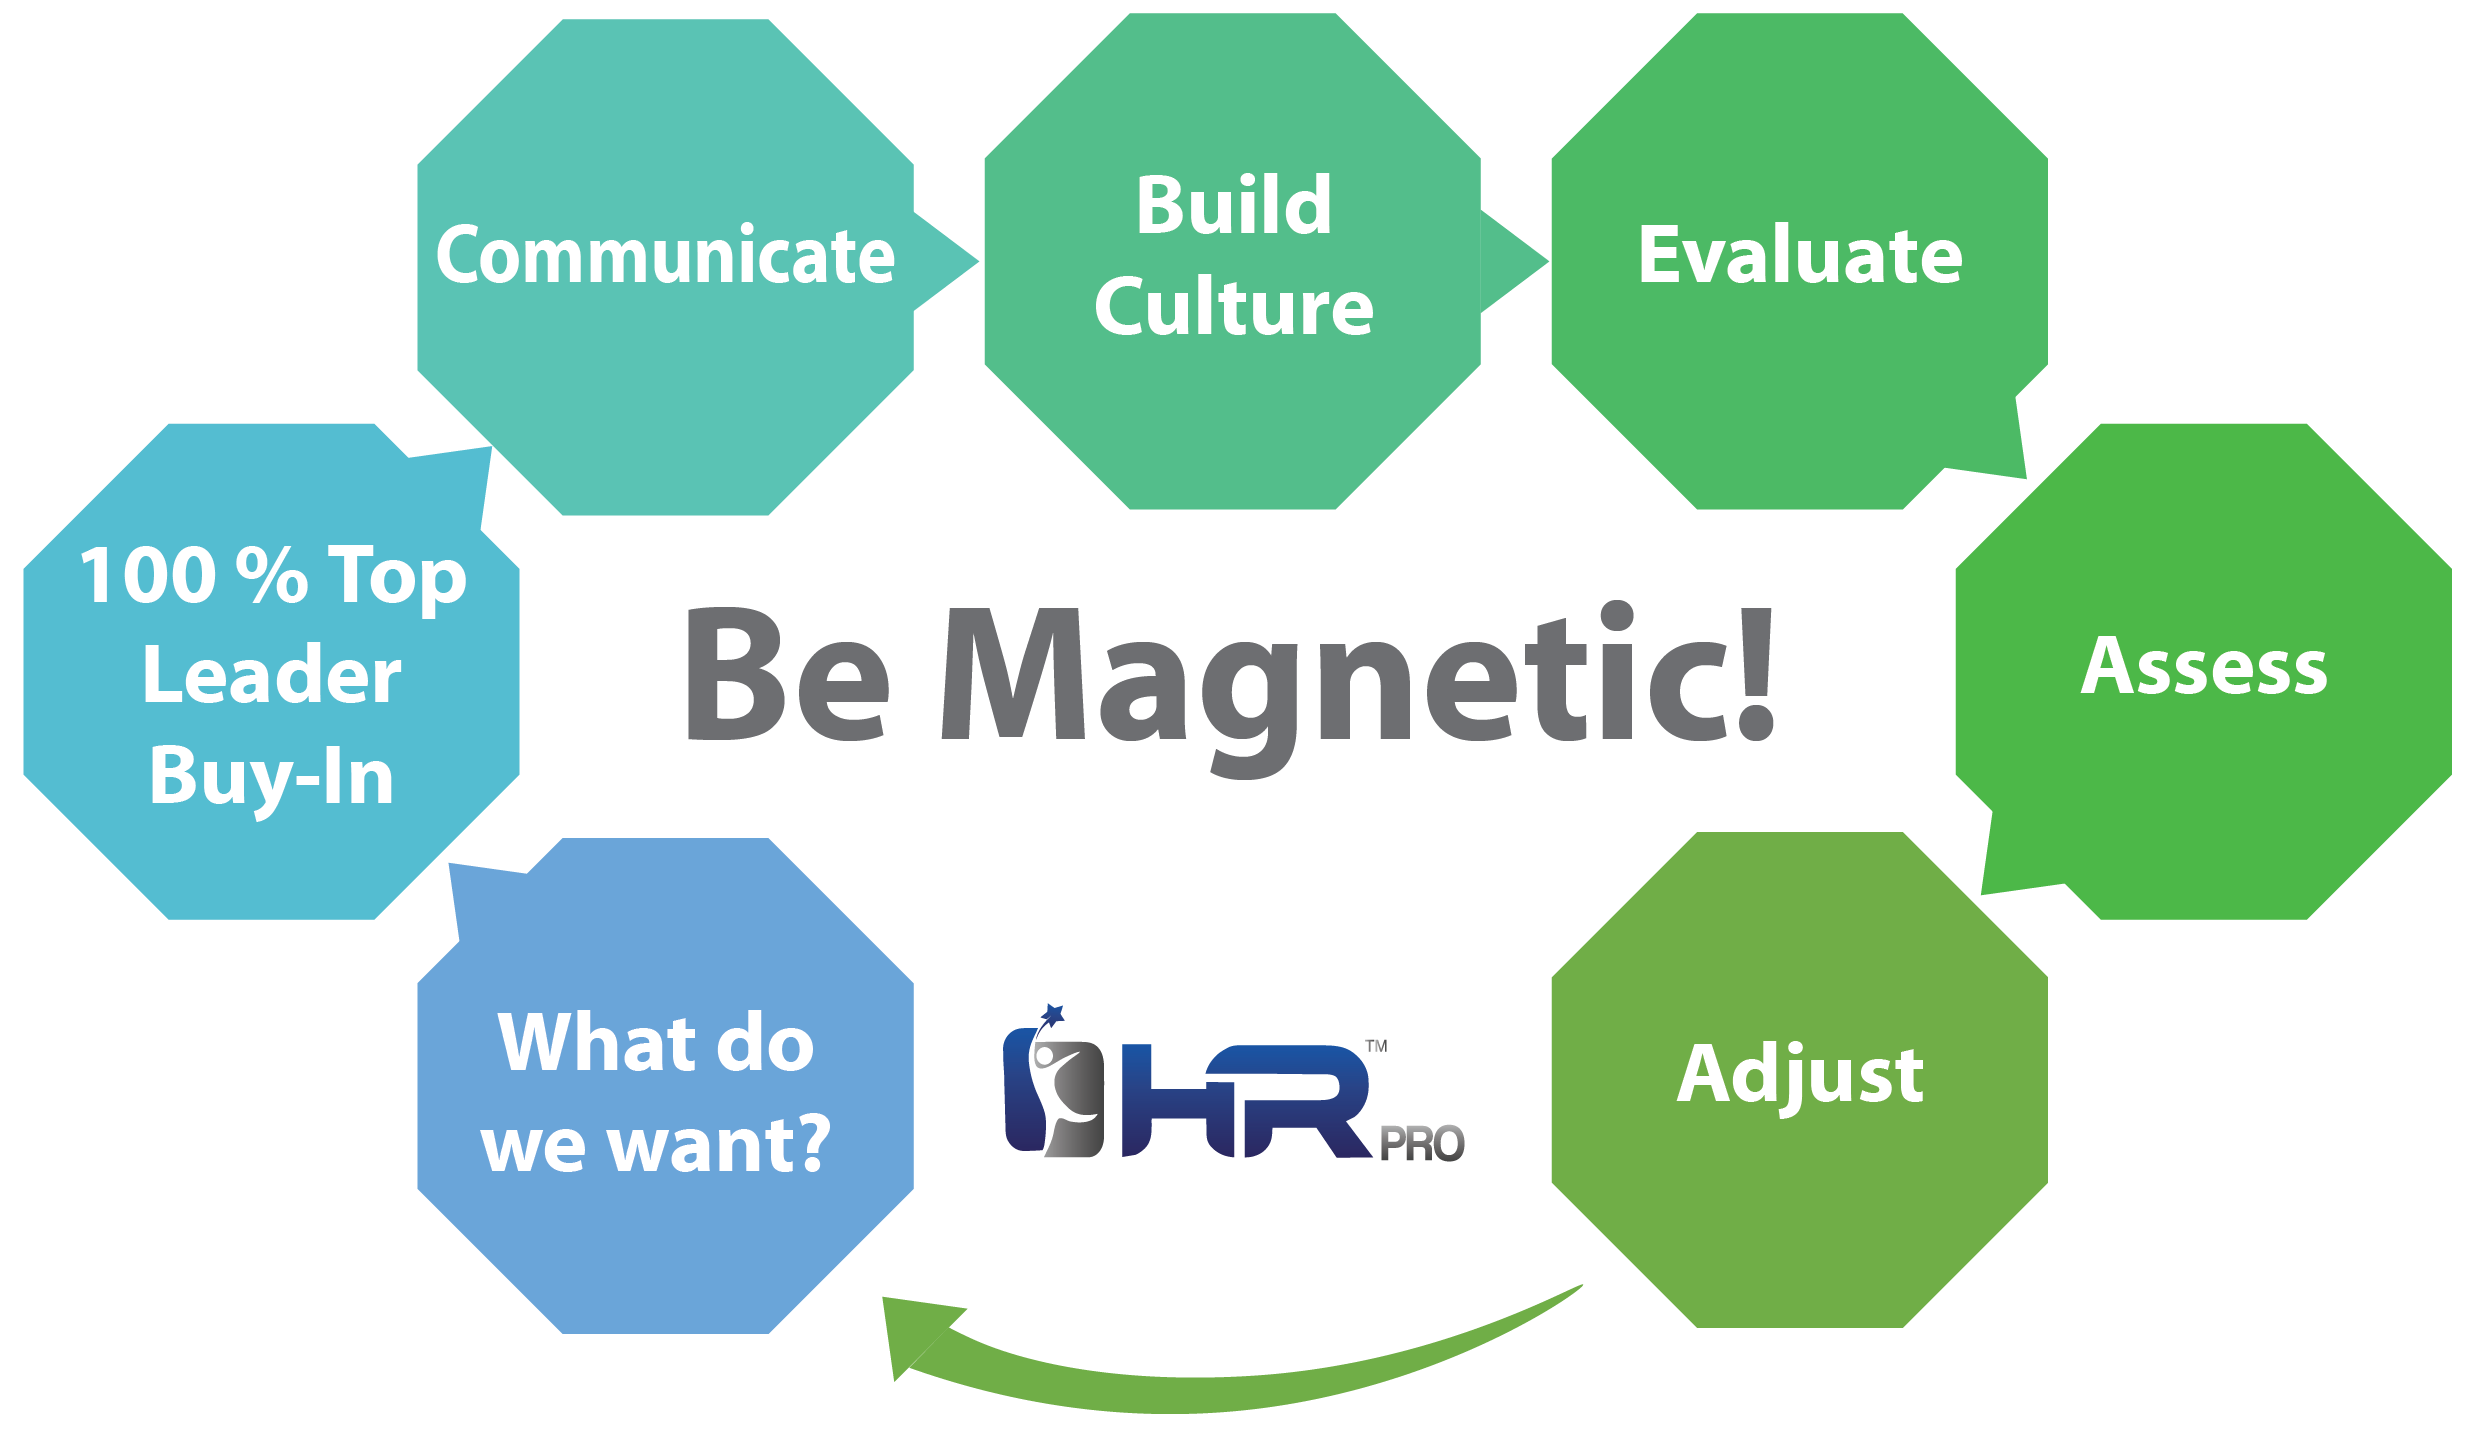 How to Be a Magnetic Organization